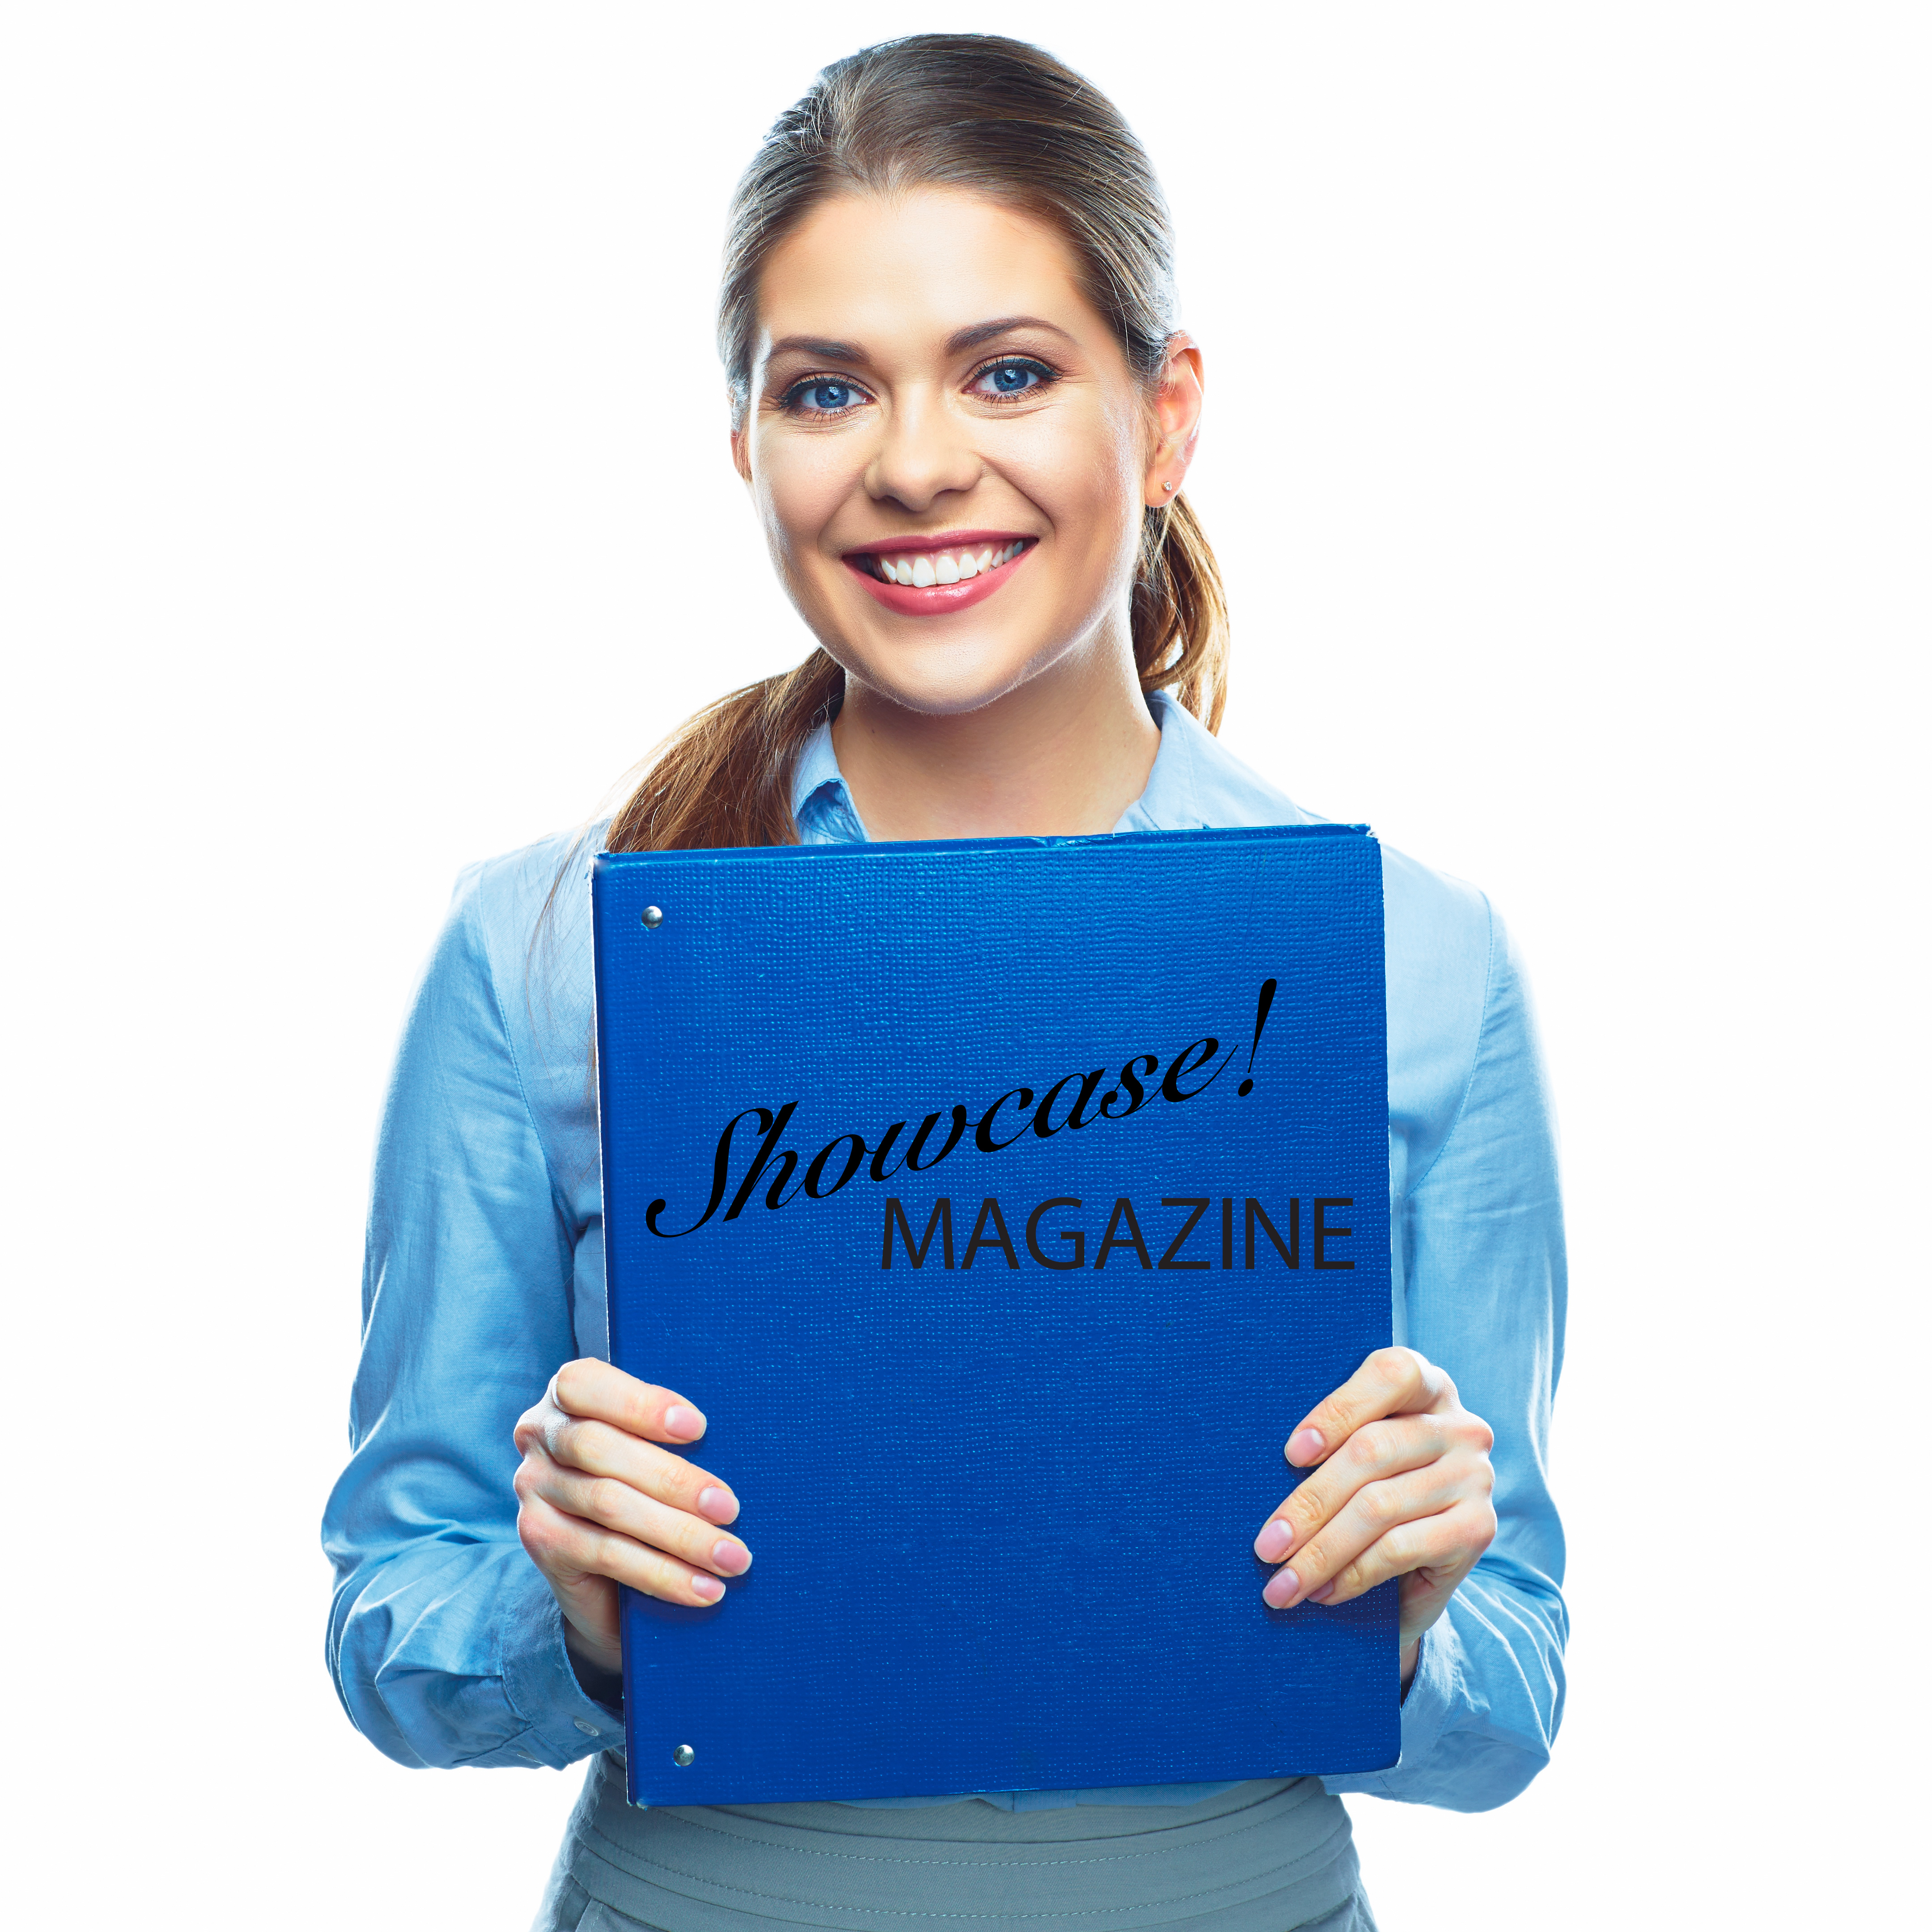 personal attributes showcase magazines here are the personal attributes needed to be successful in this business